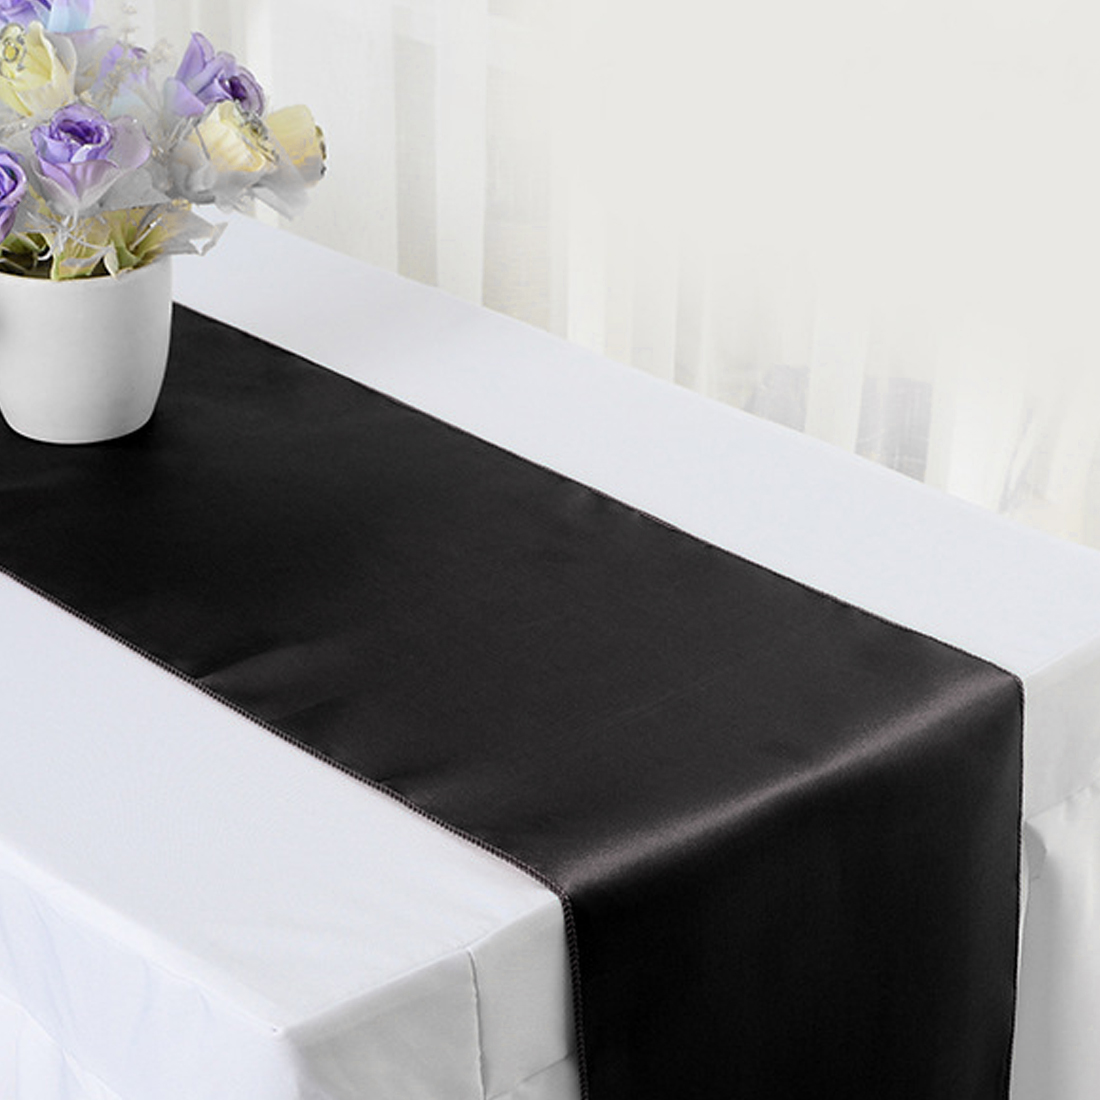 13colors 30*275cm Satin Table Runner For Home Party Wedding Christmas Decoration Engagement/Hotel Banquet/Fesival Decor